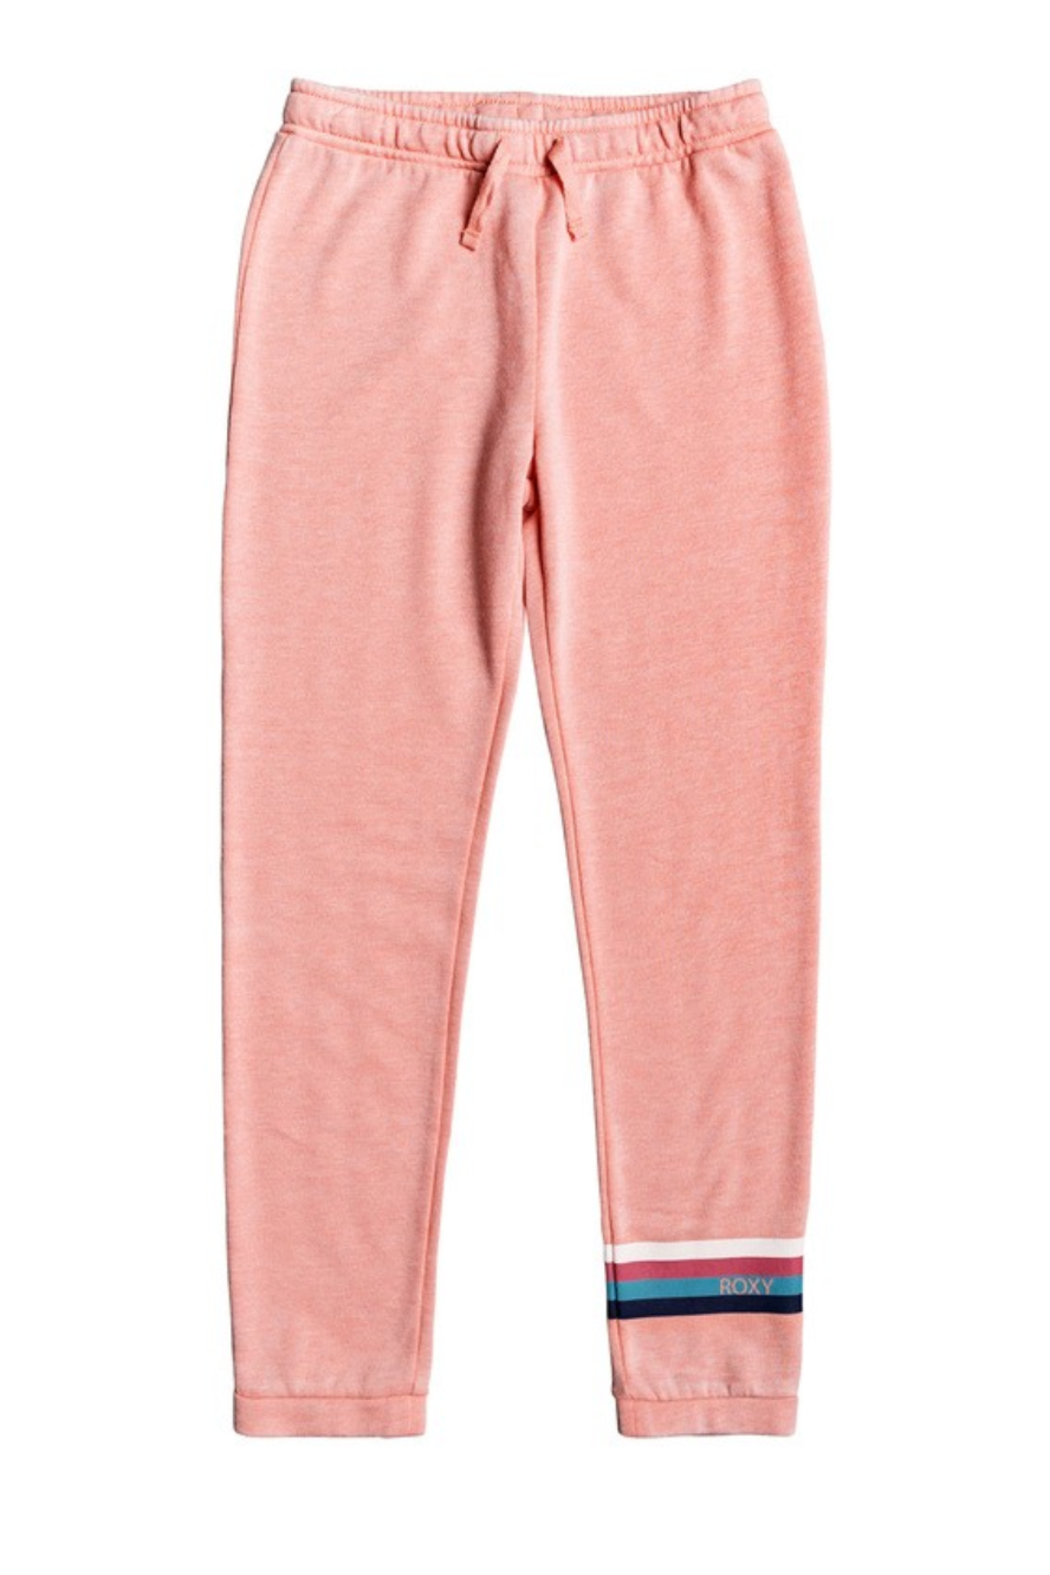 Roxy Jungle Day B Joggers - Main Image